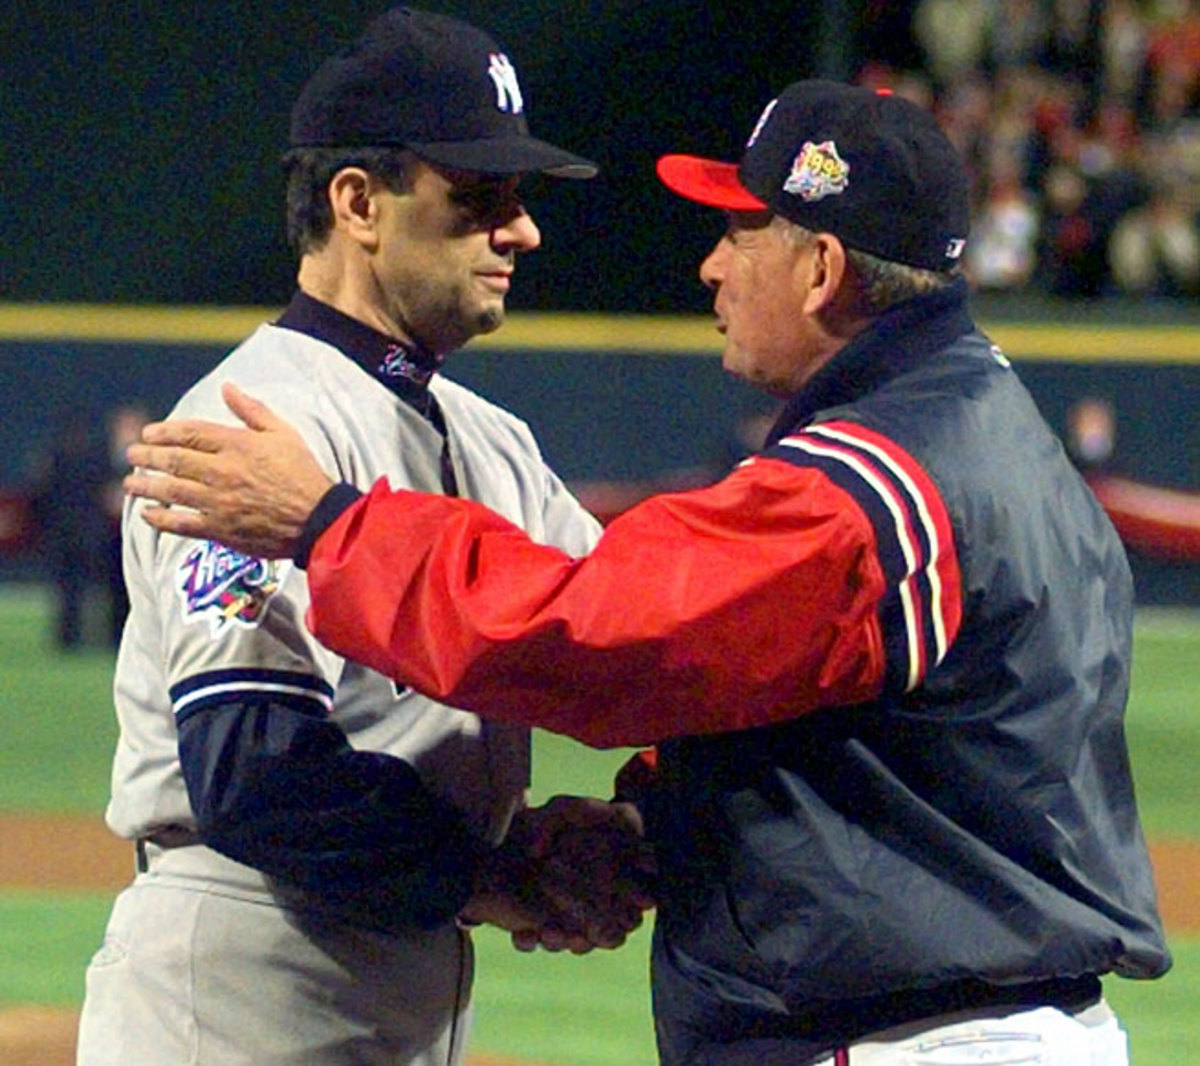 Joe Torre's Yankees beat Bobby Cox's Braves in both the 1996 and 1999 World Series.